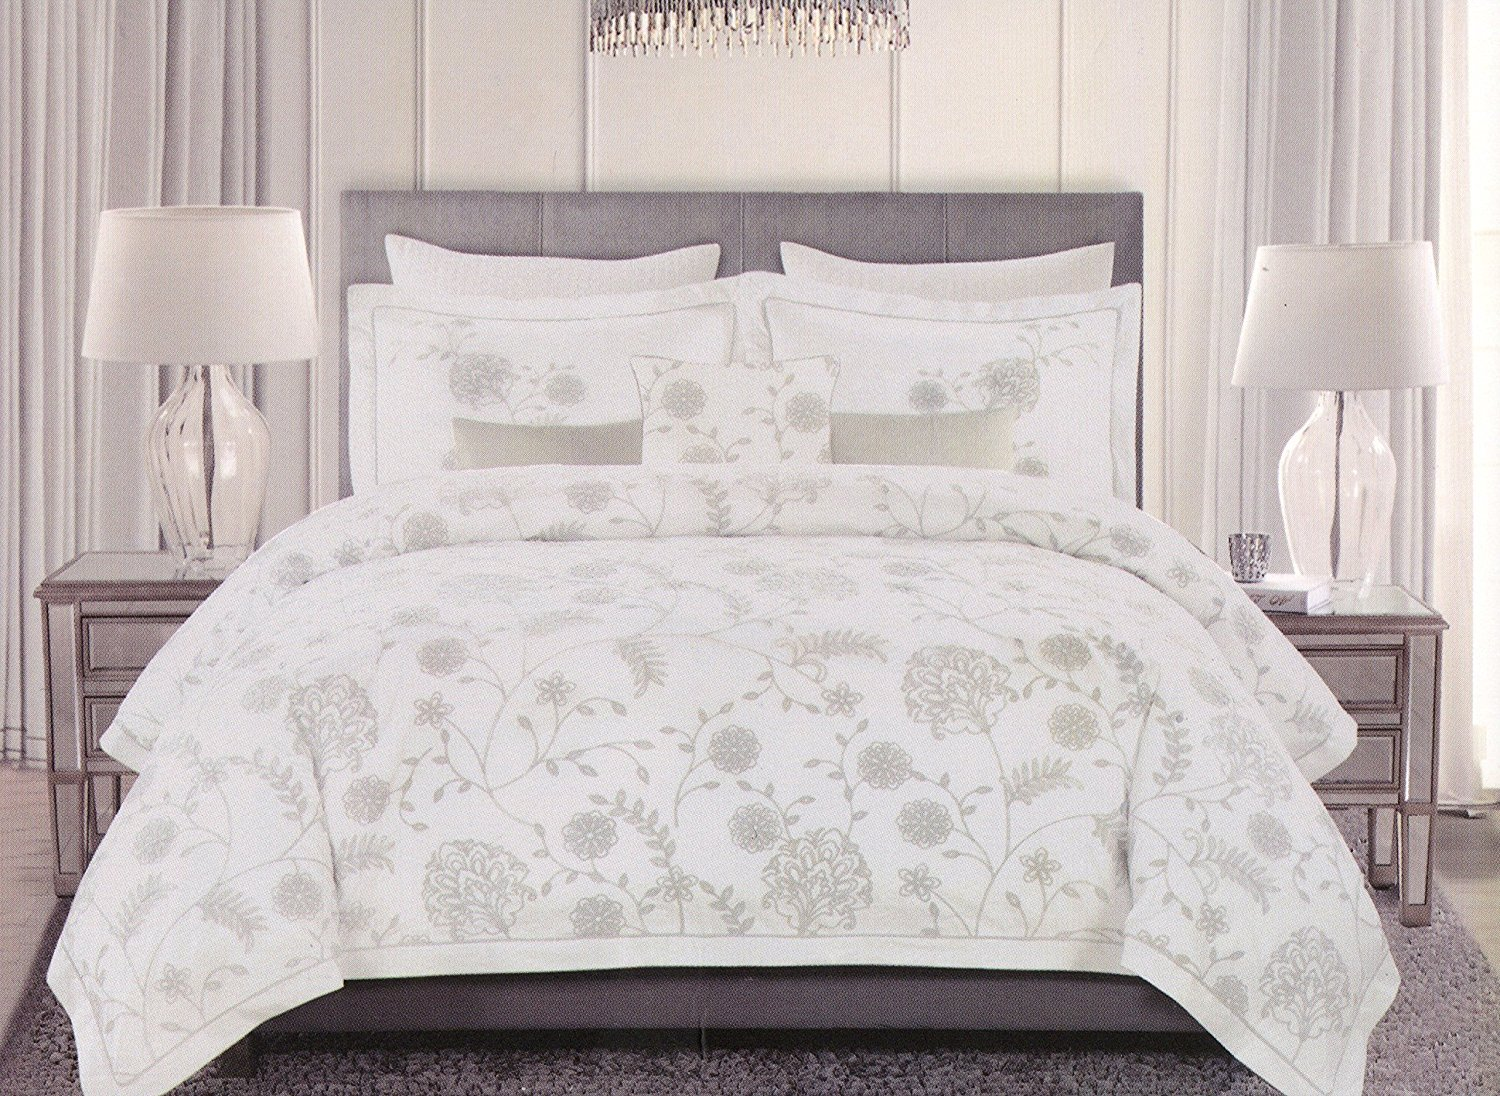 Tahari Home Engrid Garden Flowers 3pc Duvet Cover Set Floral Branches Vines Scrolls Leaves Embroidered Cottage eStyle Gray White Grey (Queen)